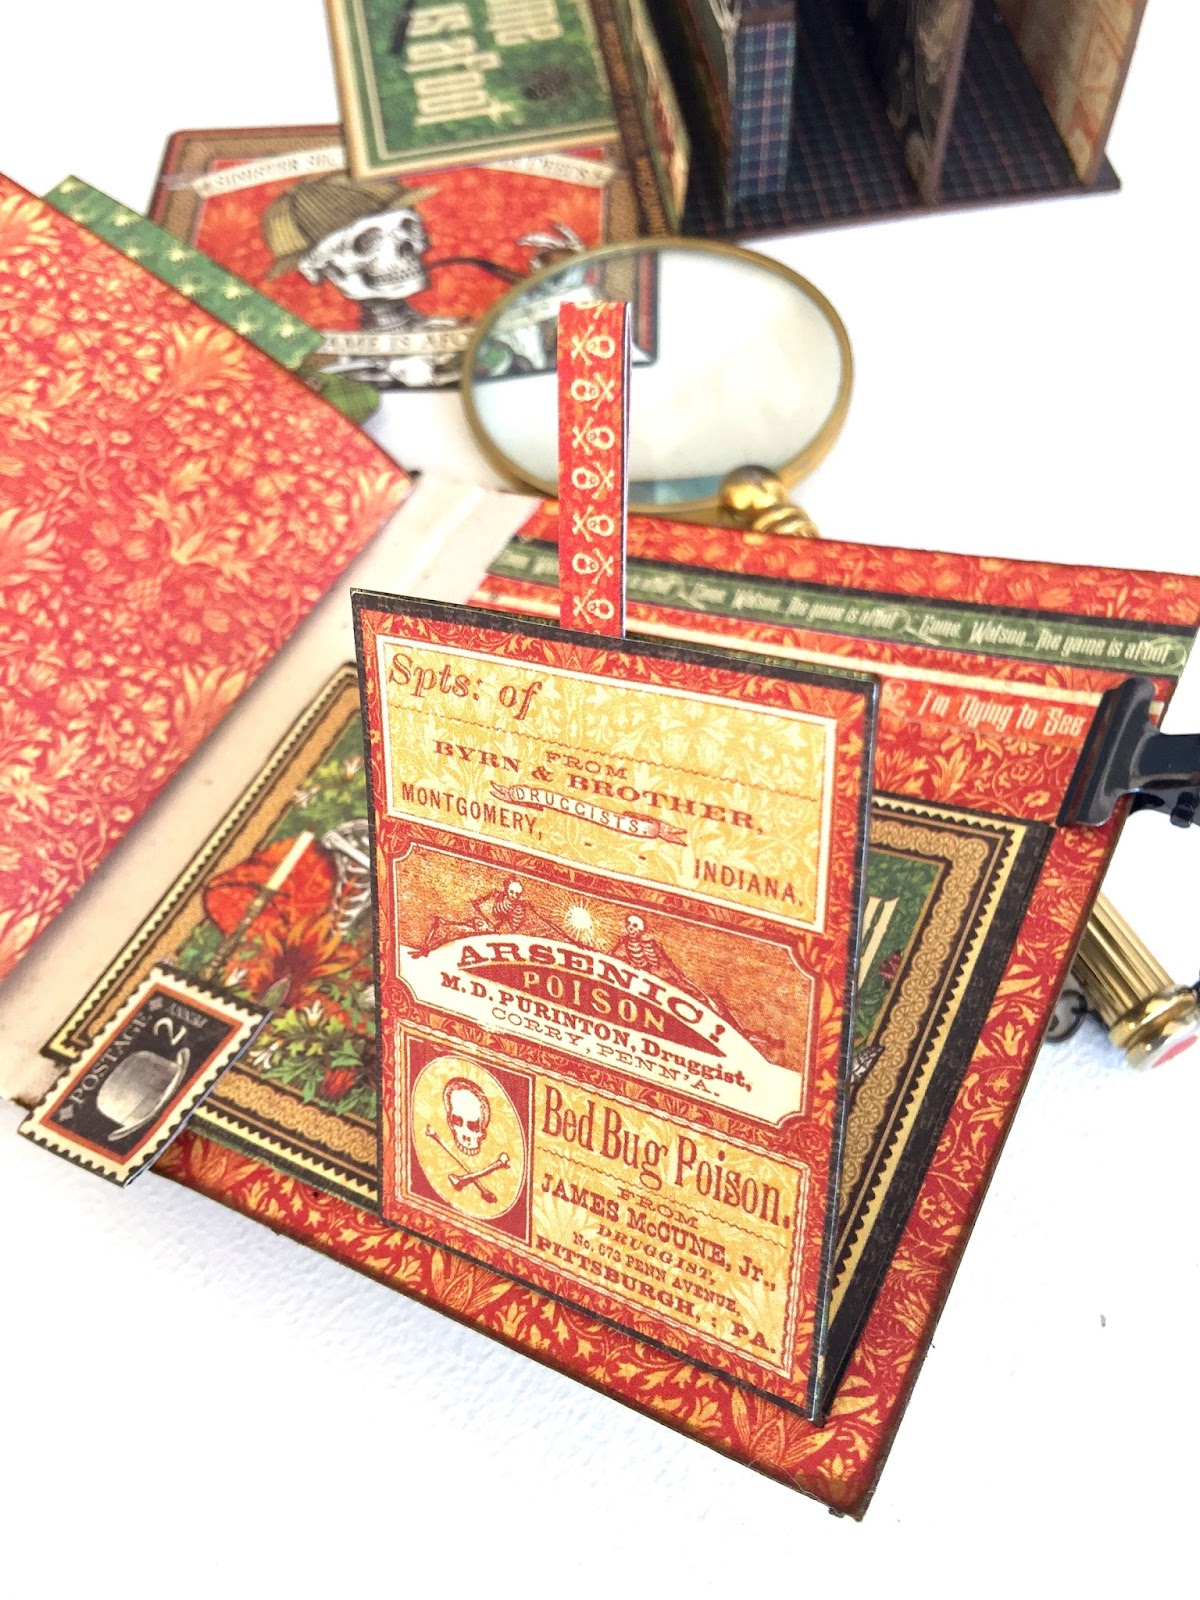 Stand and Mini Album Master Detective by Marina Blaukitchen Product by Graphic 45 photo 26.jpg